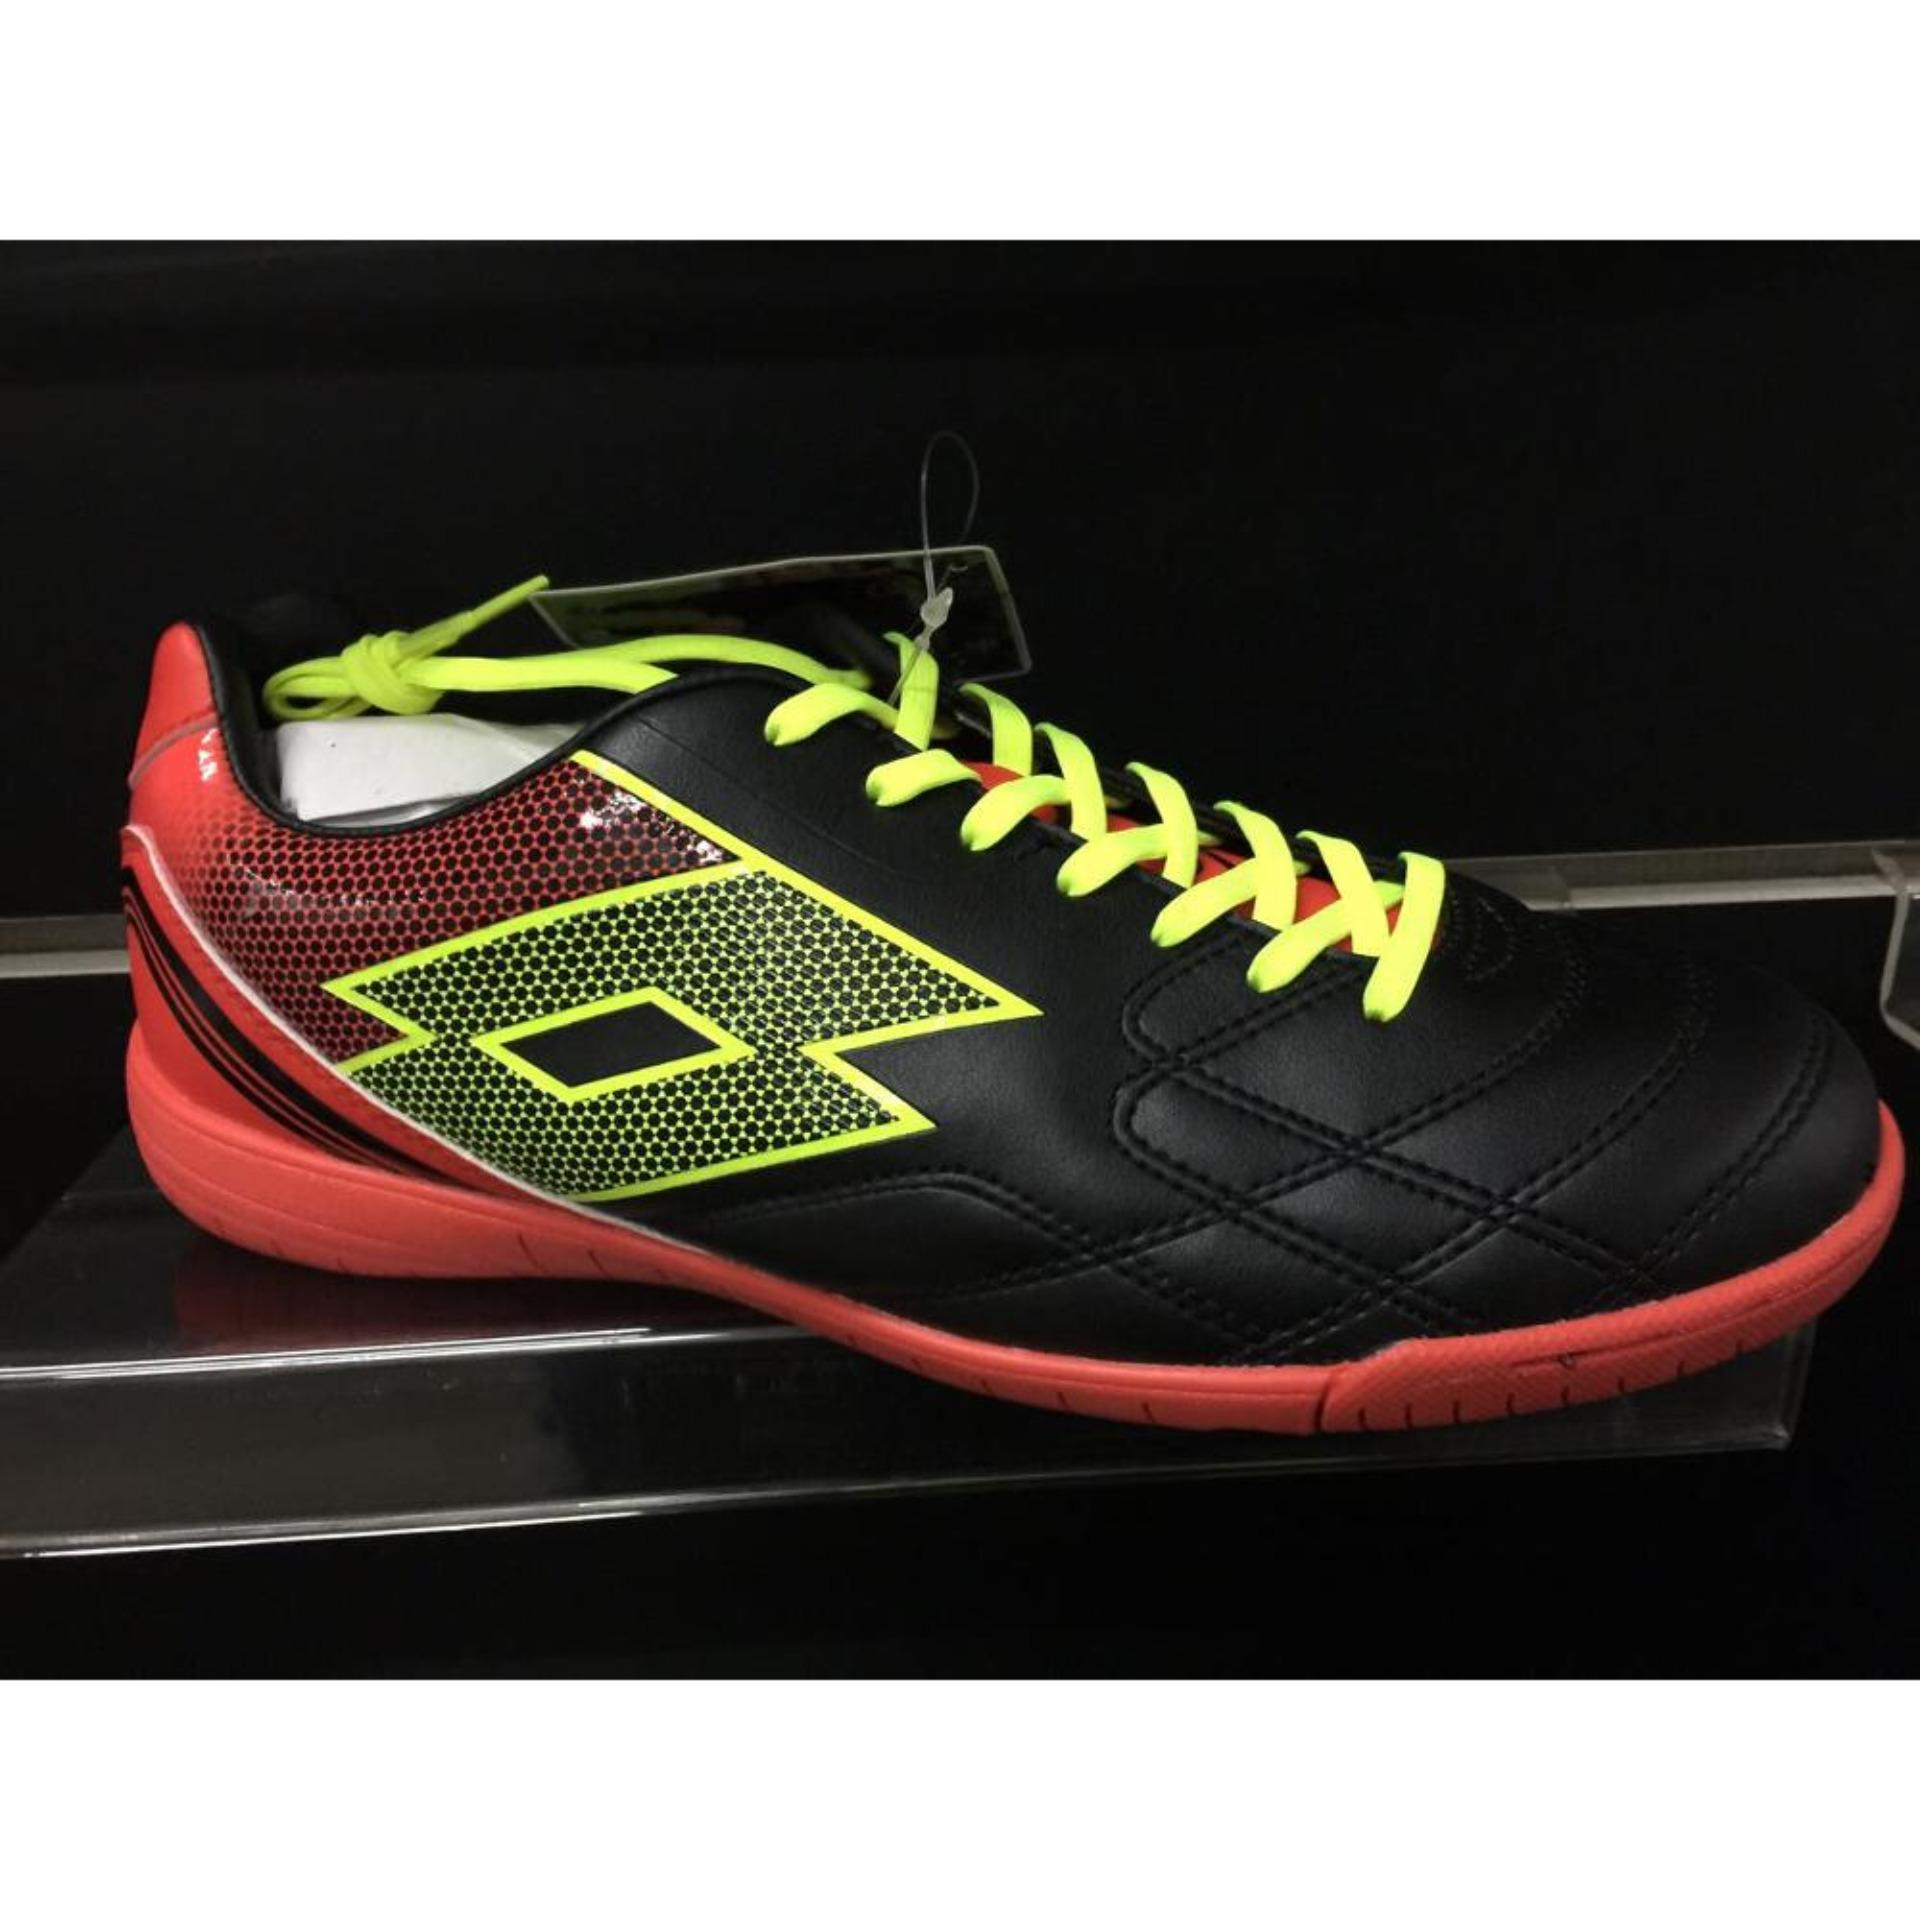 Sepatu Futsal Lotto Spider Xi Id Black Yellow Original 100 New2017 ... 974ccefa71